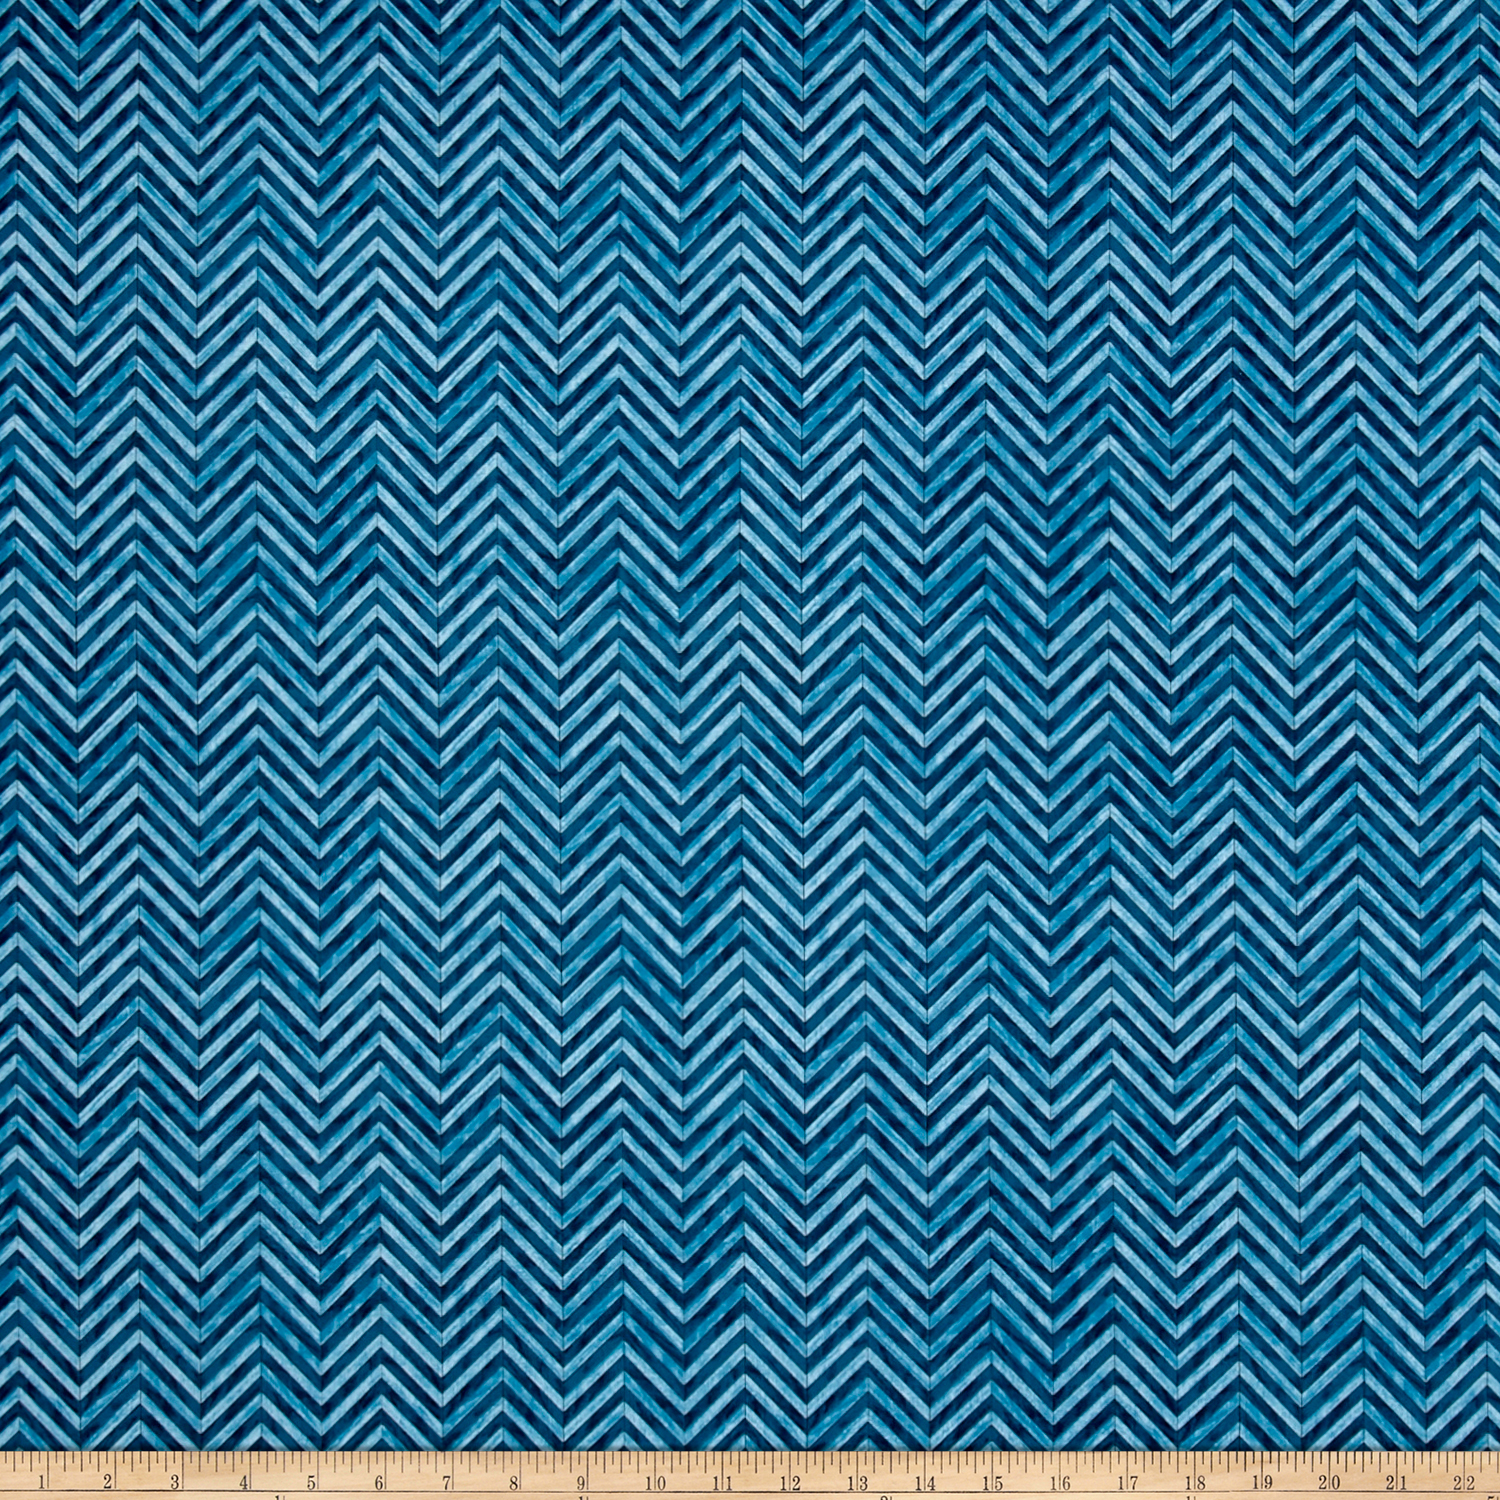 Craftsman Chevron Denim Fabric